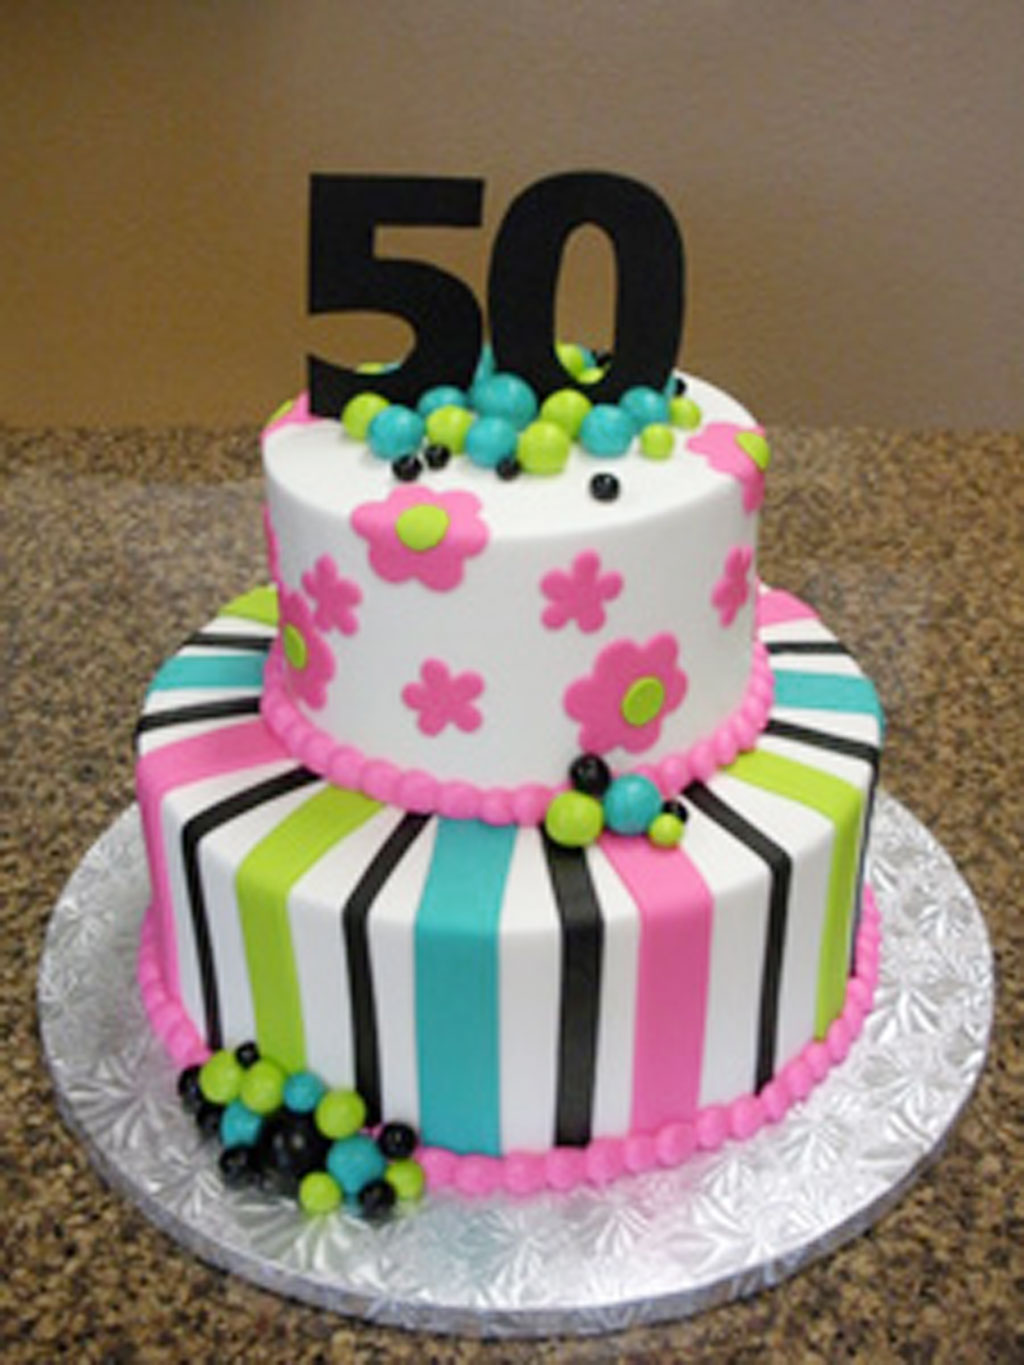 Birthday Cake Design Photos : 50th Birthday Cakes Pictures For Women Birthday Cake ...